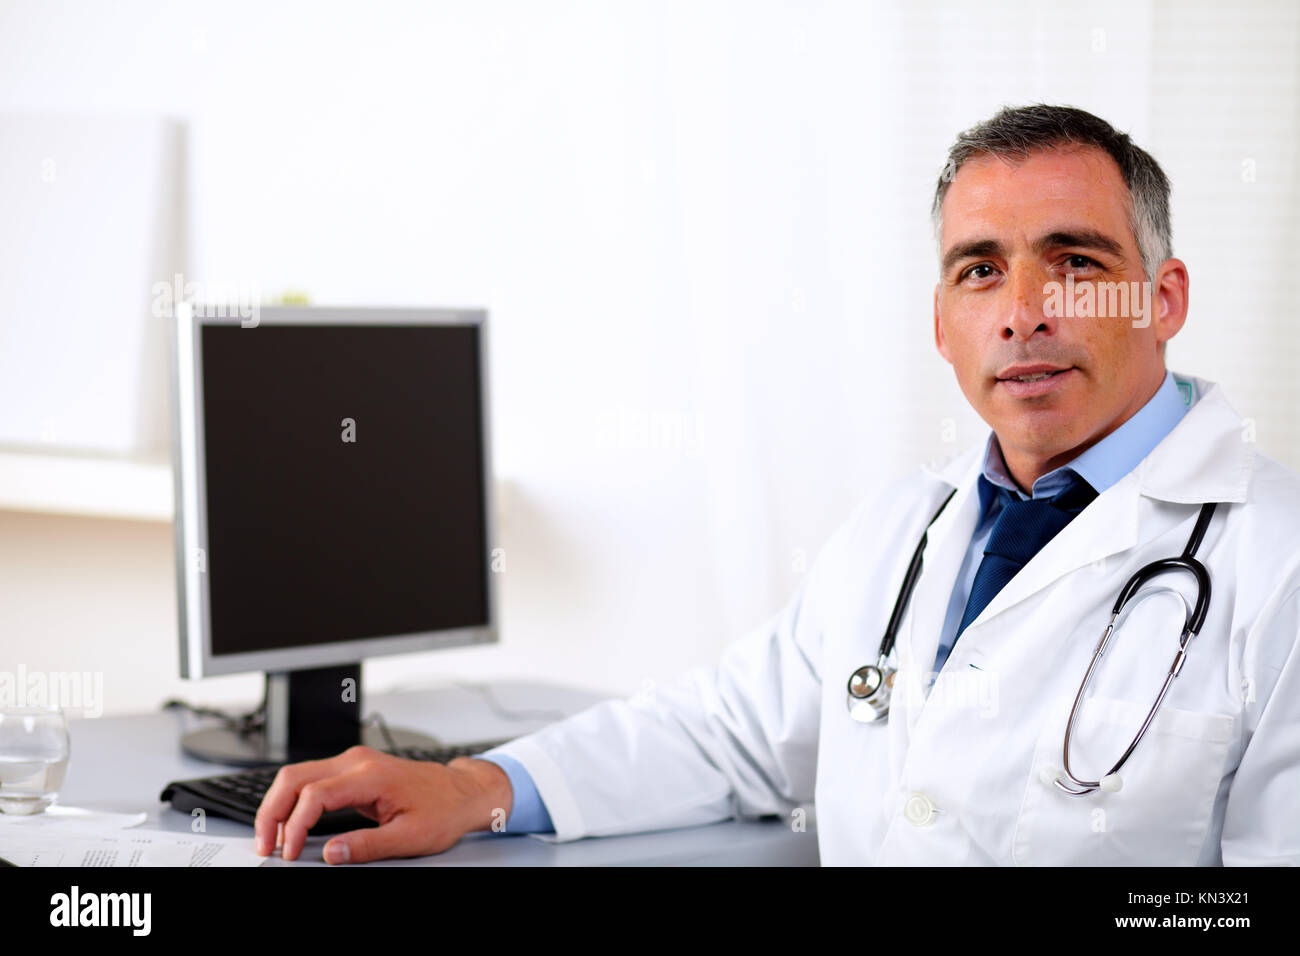 Portrait of a professional mature medicine specialist at hospital workplace. - Stock Image